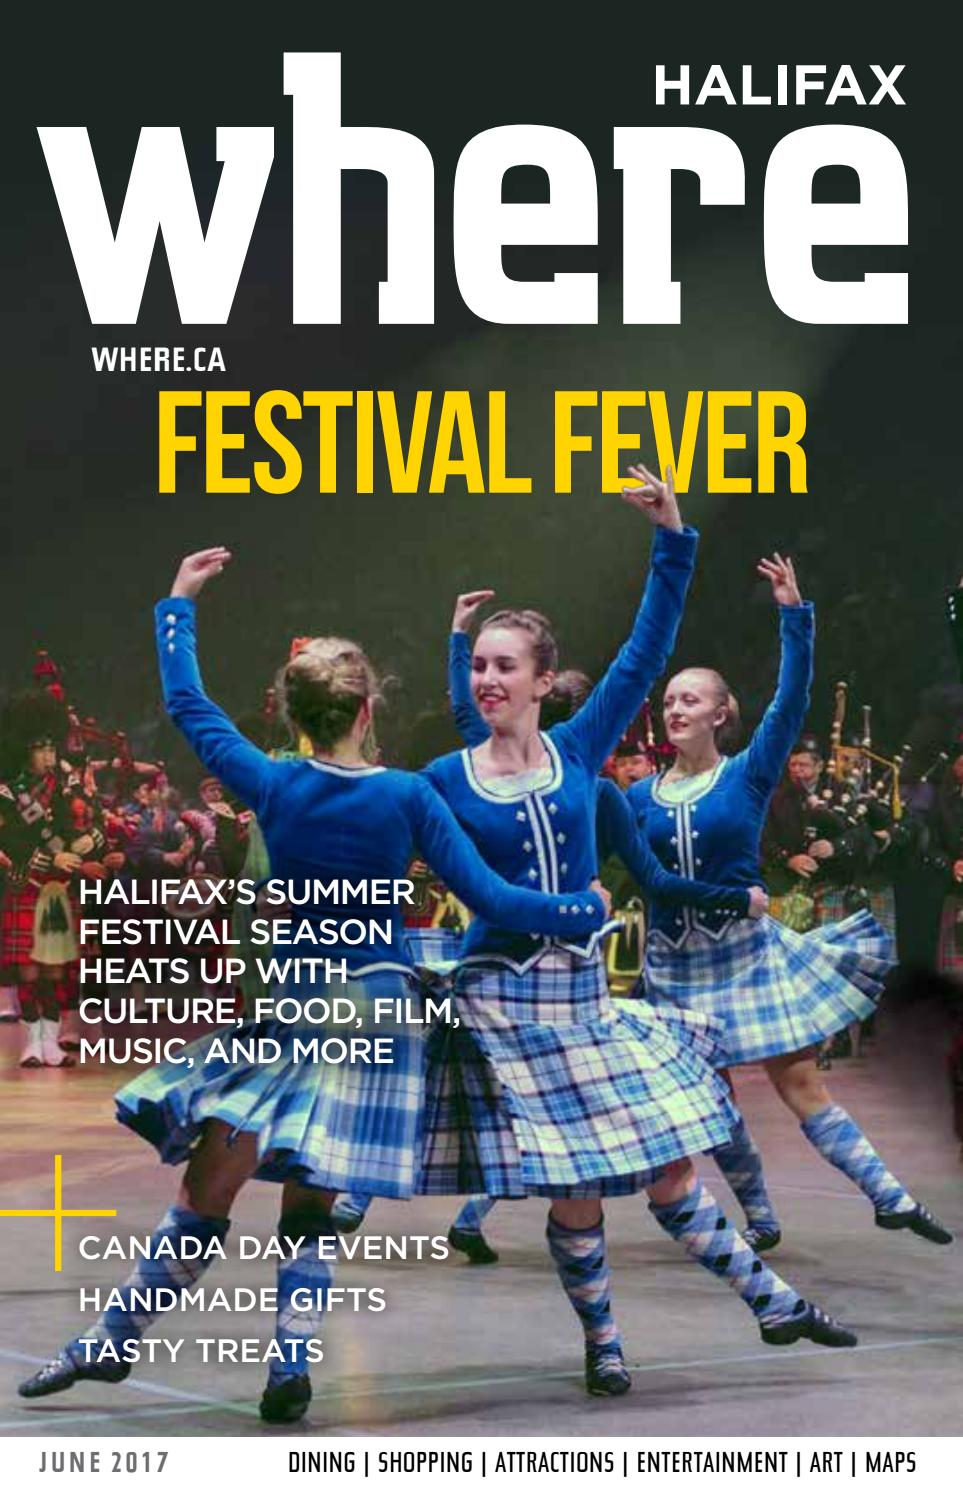 where magazine halifax june 2017 by metro guide publishing - issuu